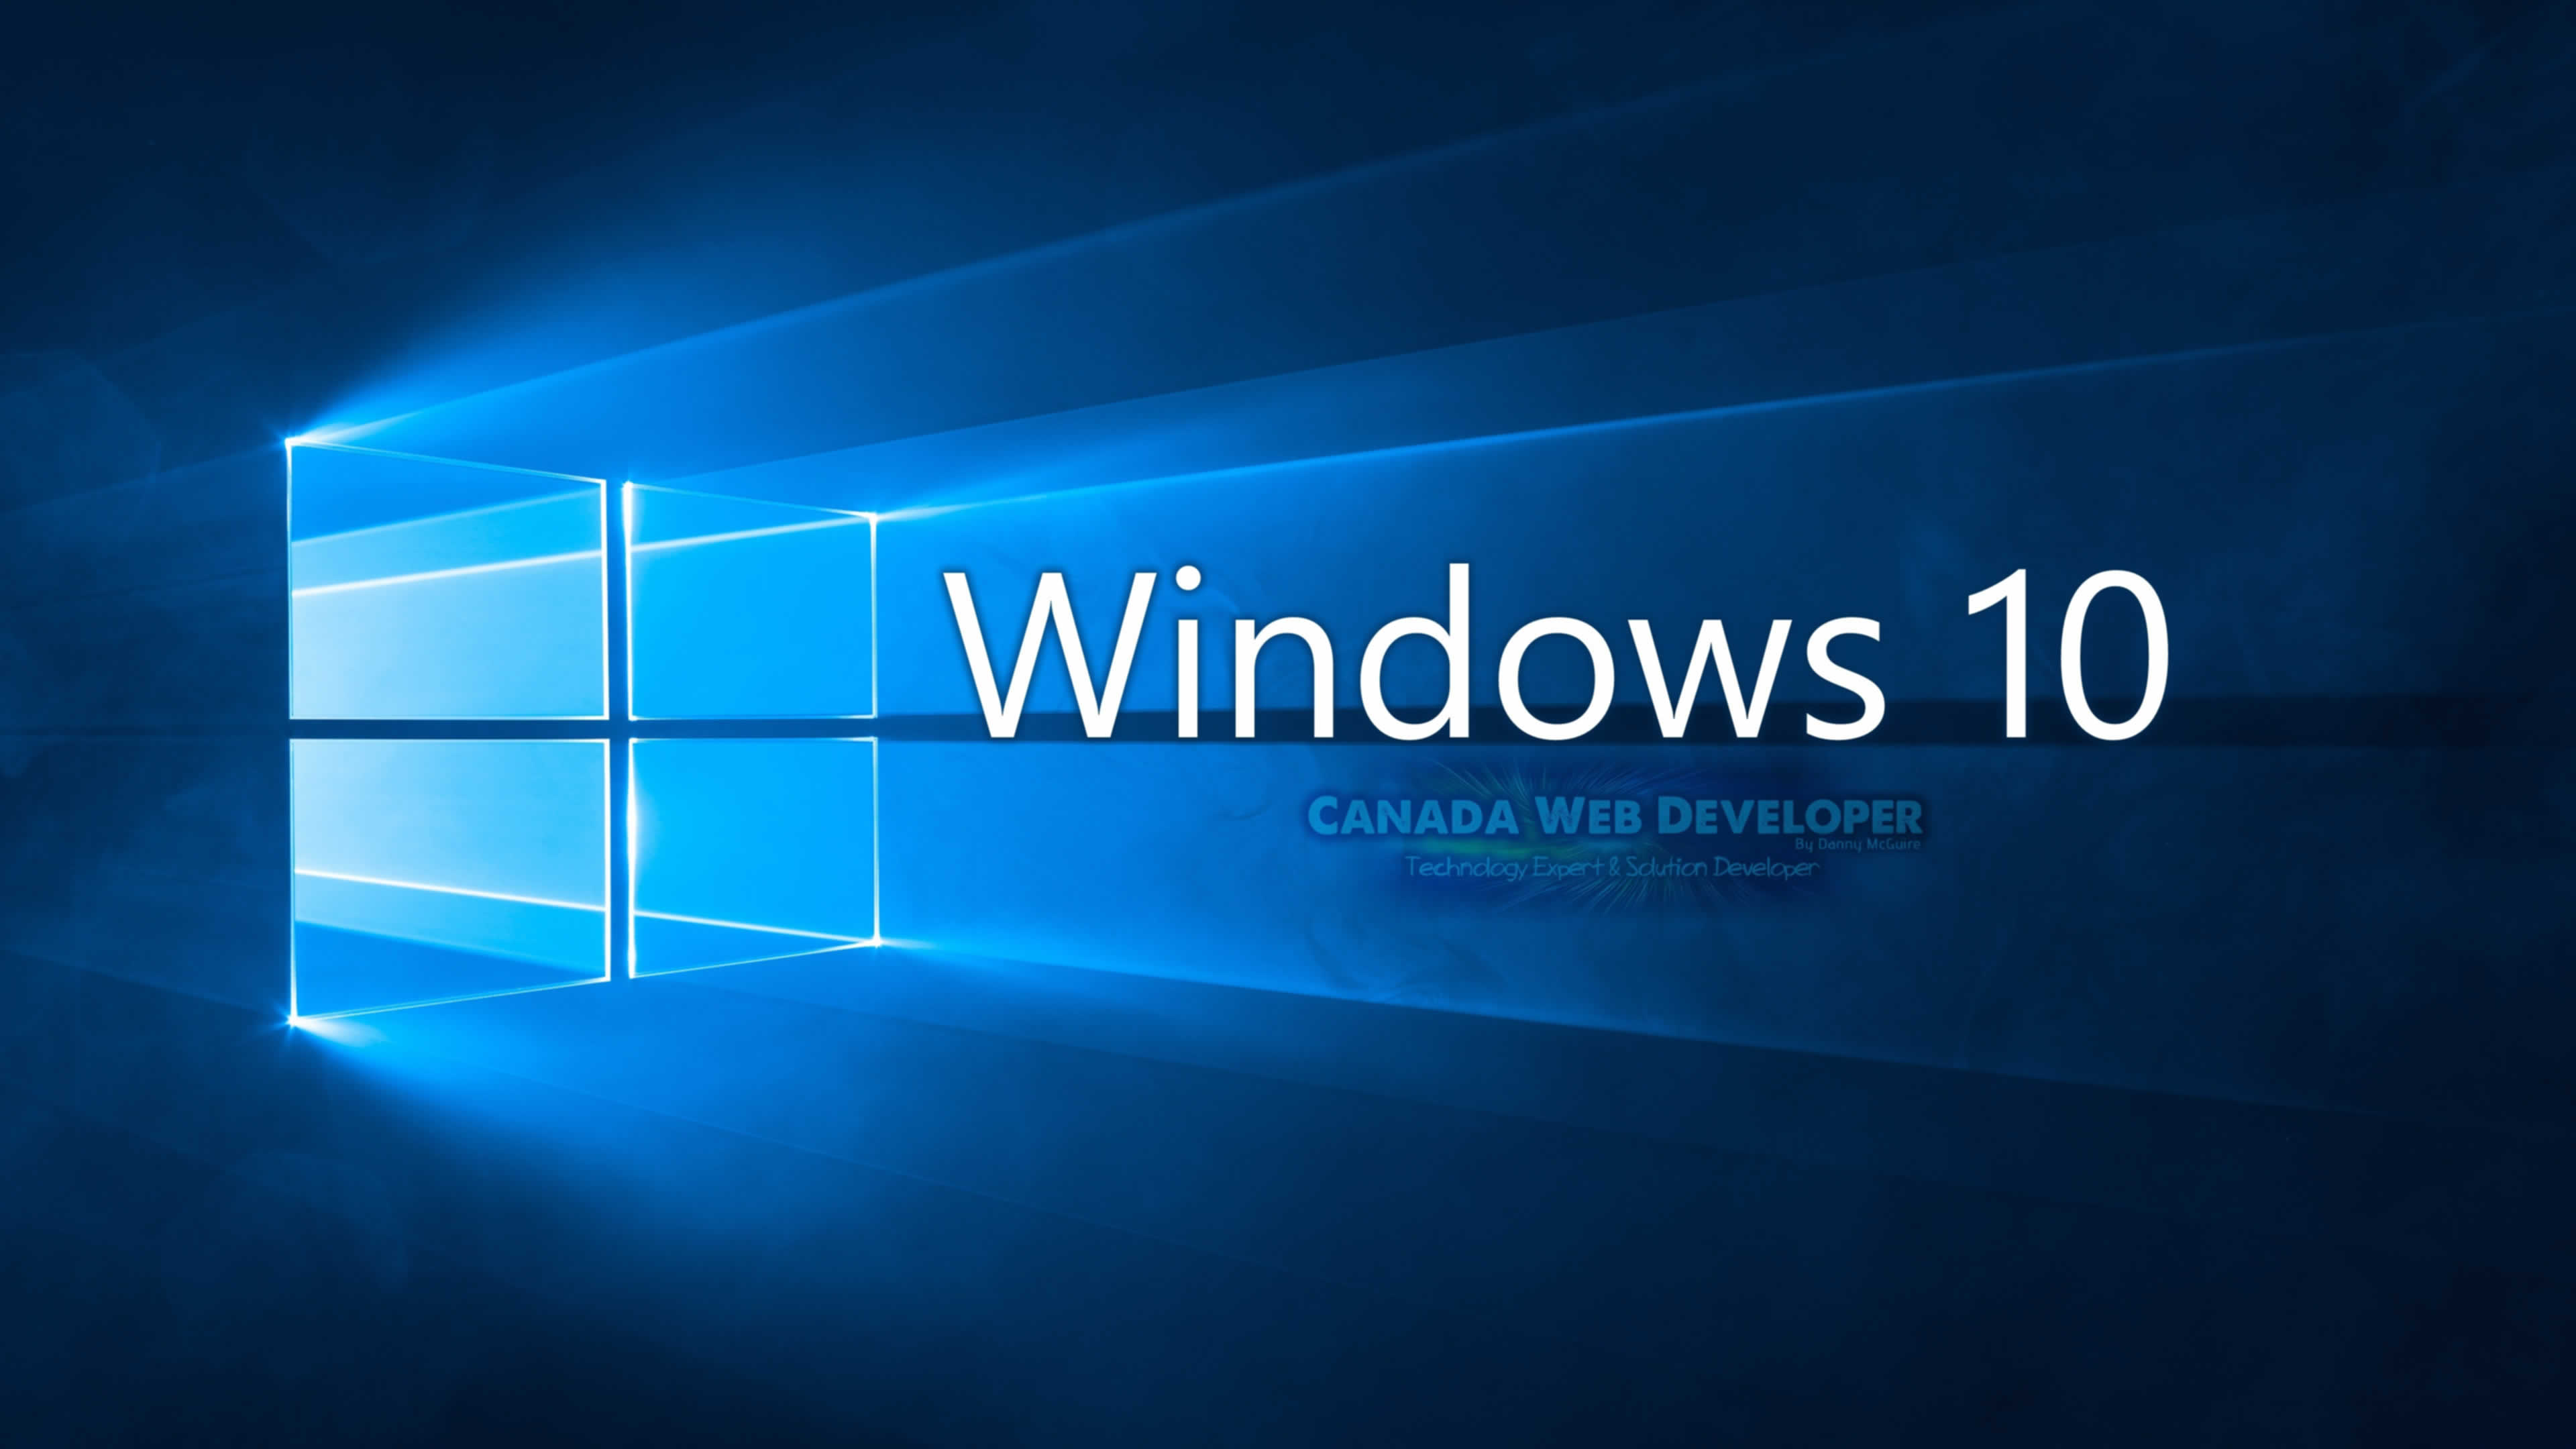 Microsoft windows 10 logo wallpaper wallpapersafari for Microsoft win10